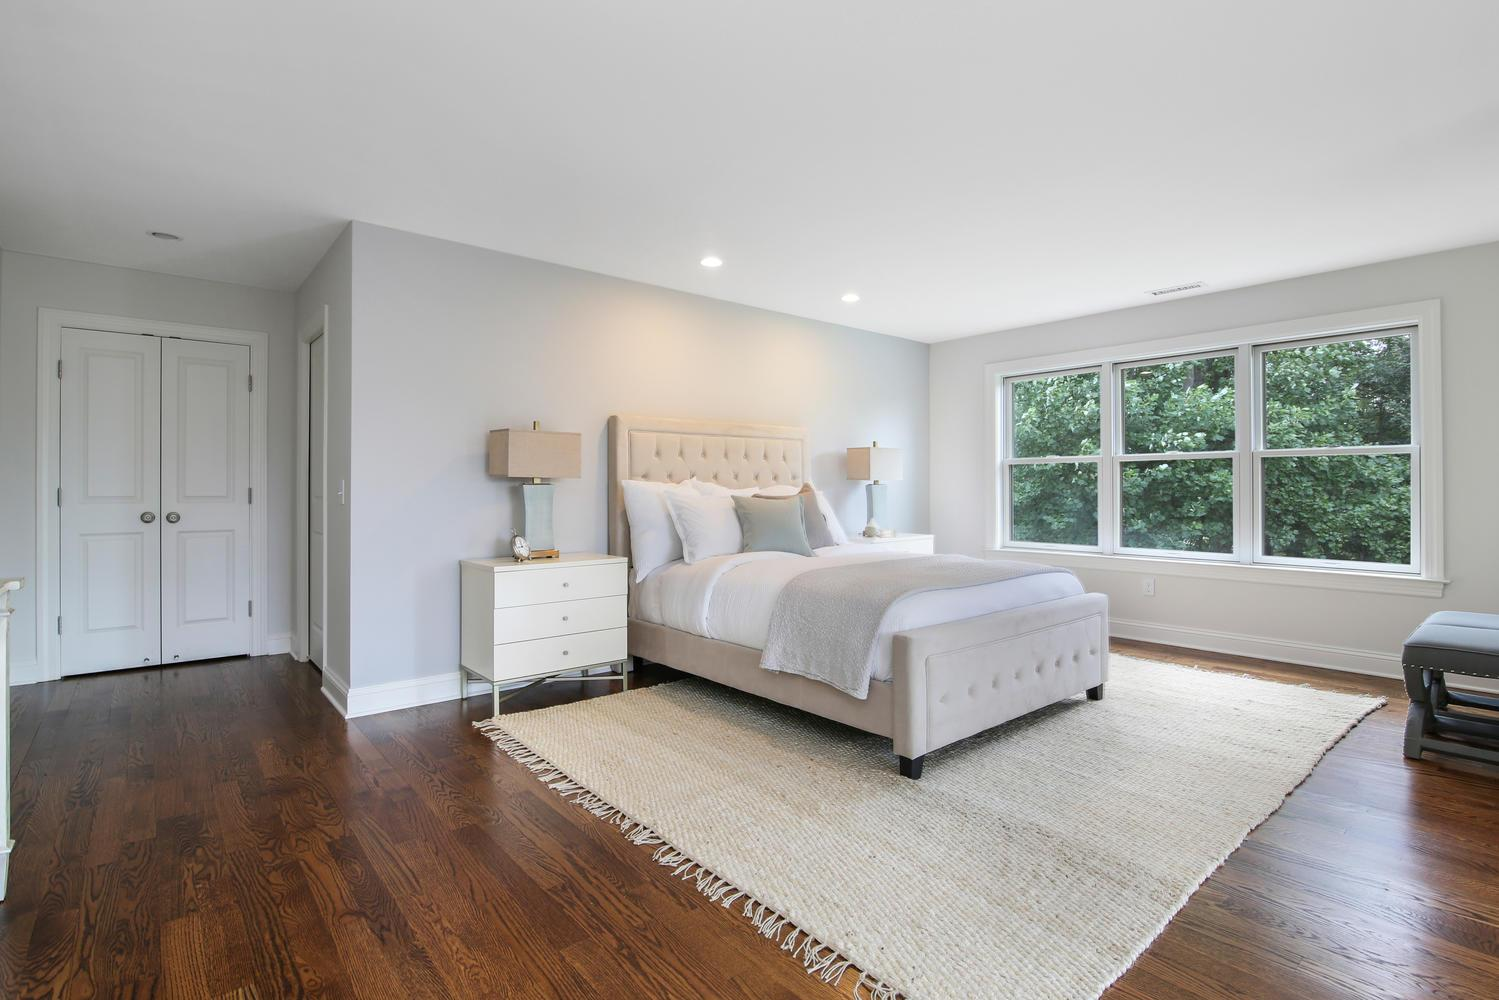 Bedroom featured in the Dogwood By Laurel Ridge Development, Inc. in New York, NY